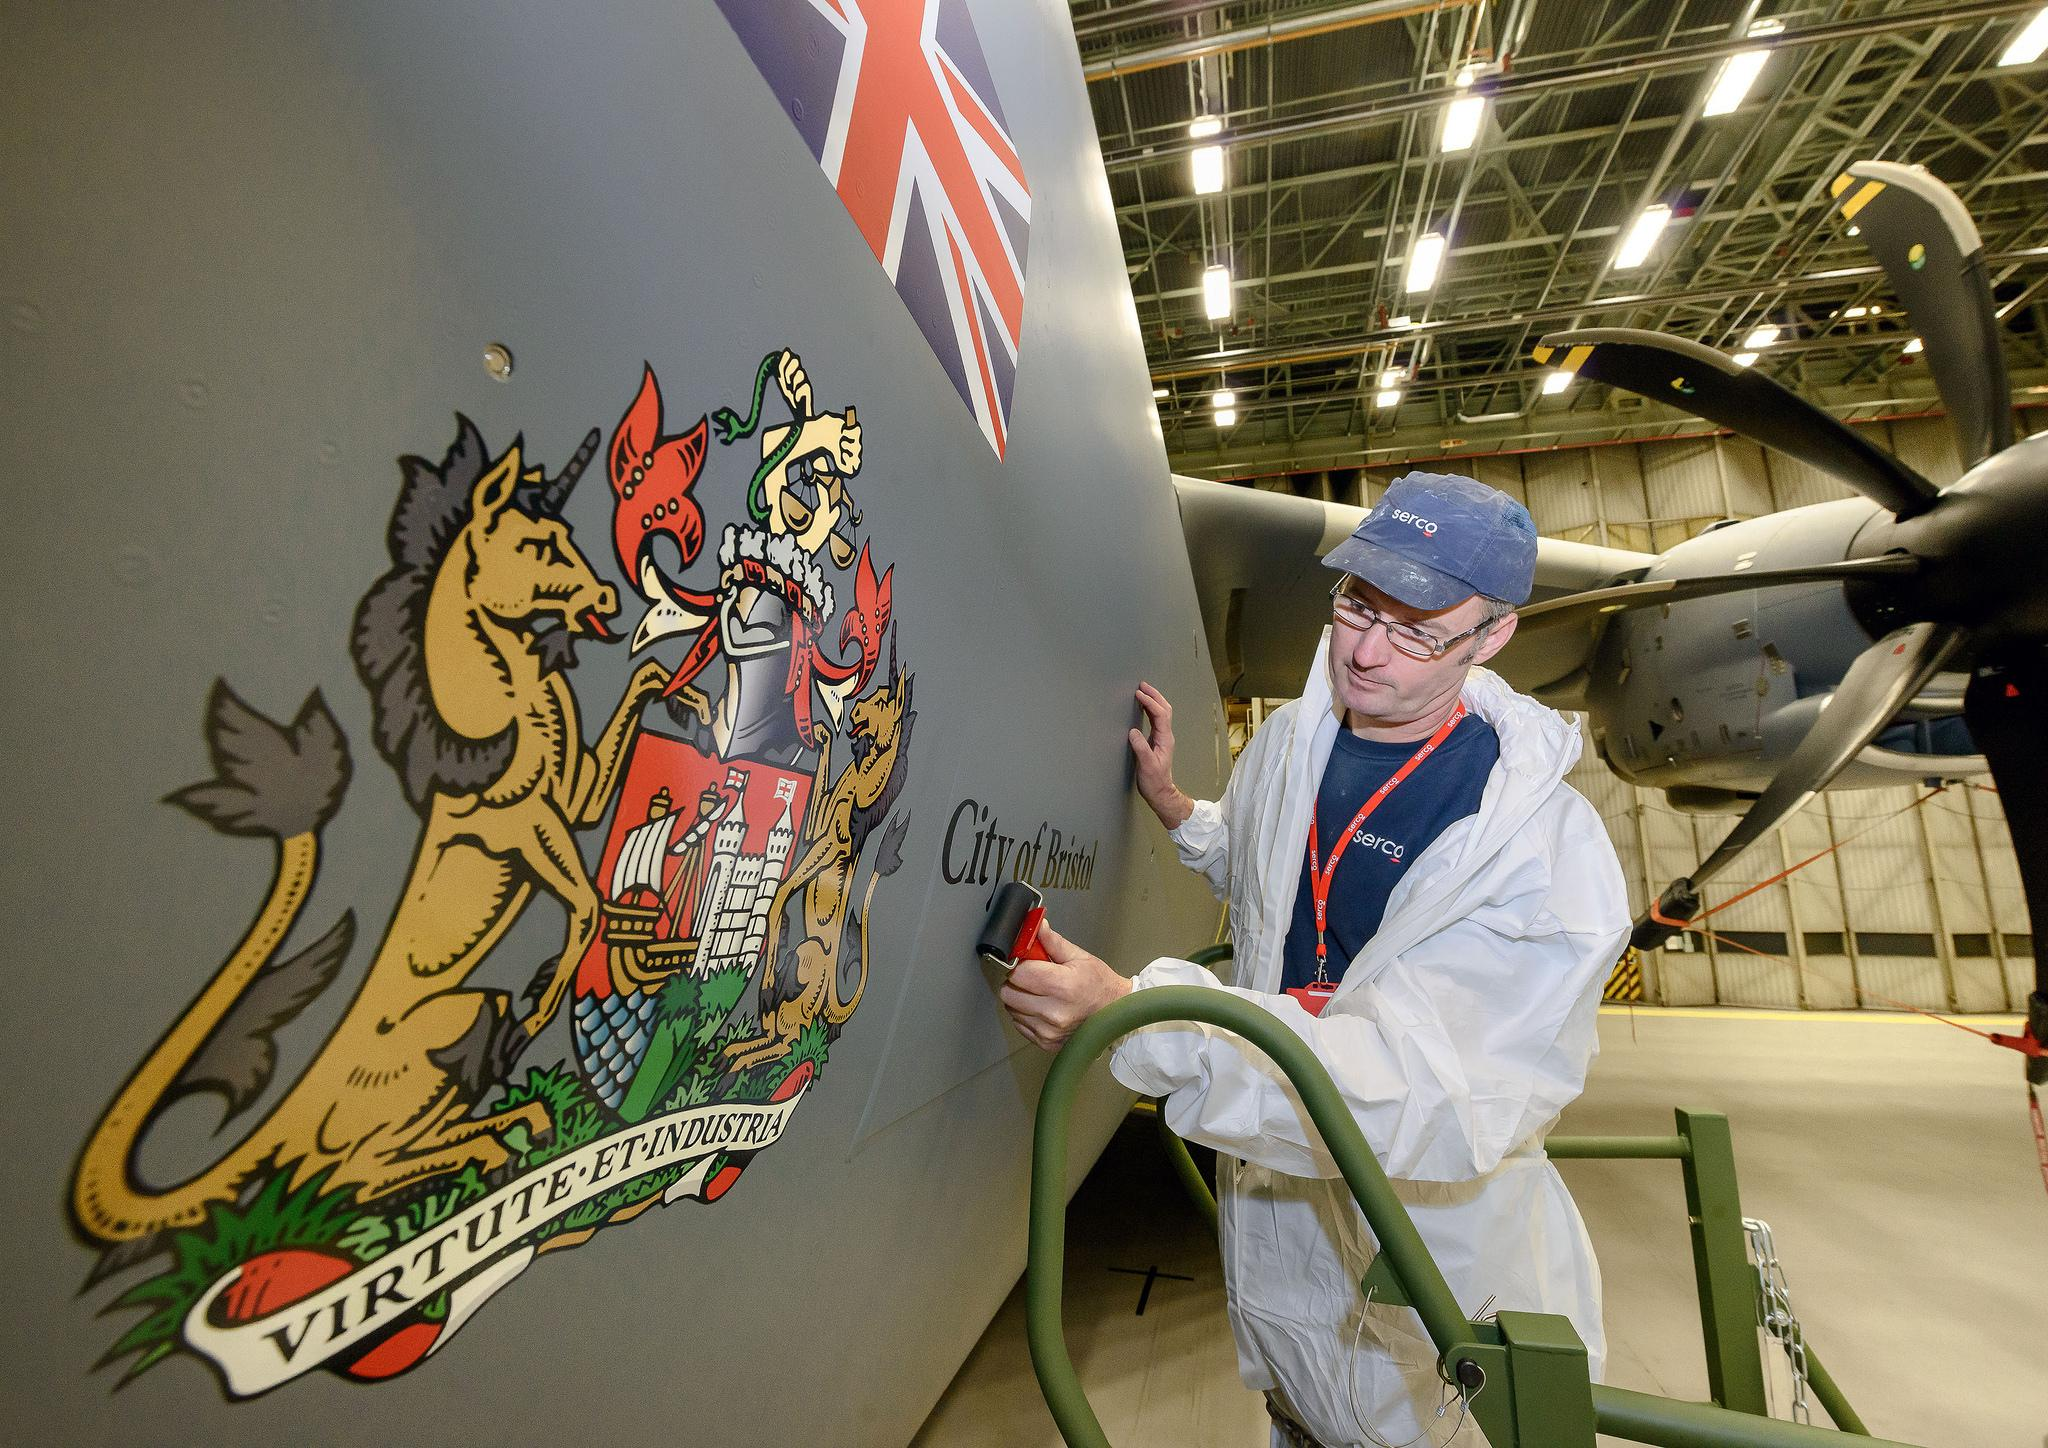 """RT @09EA63: """"@thinkdefence: Ooh arrr, first RAF A400M named the 'City of Bristol' http://t.co/fCjLZq7IU3"""" how about this @carolvorders ! 👍😃"""